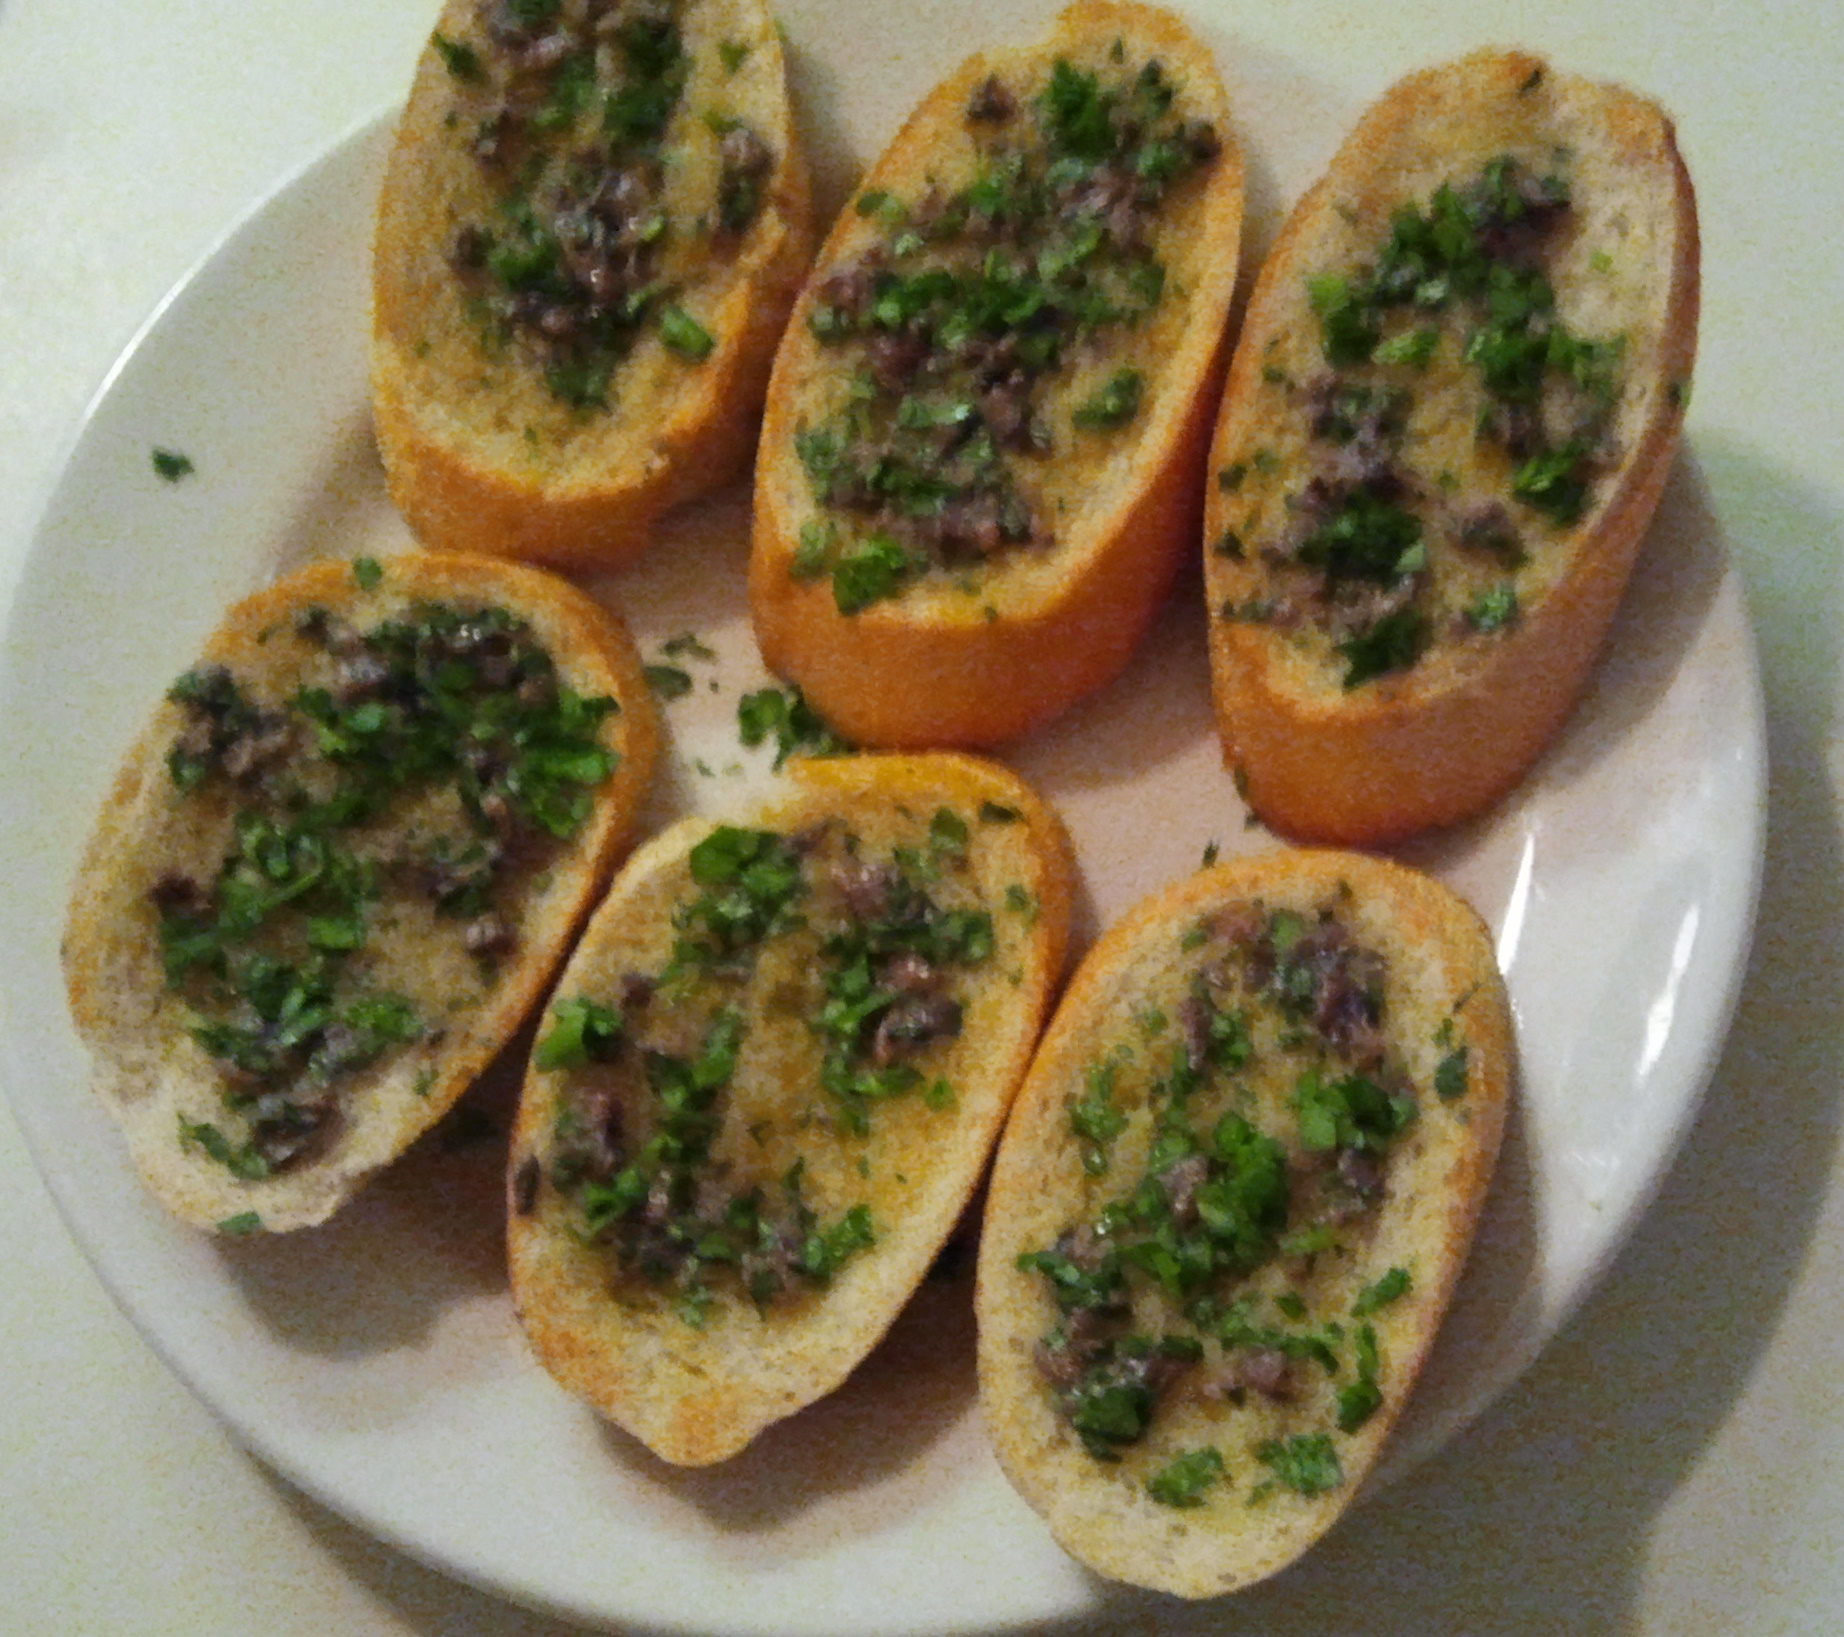 From the cookbook #2: Garlic and anchovy toasts, page 62 ...